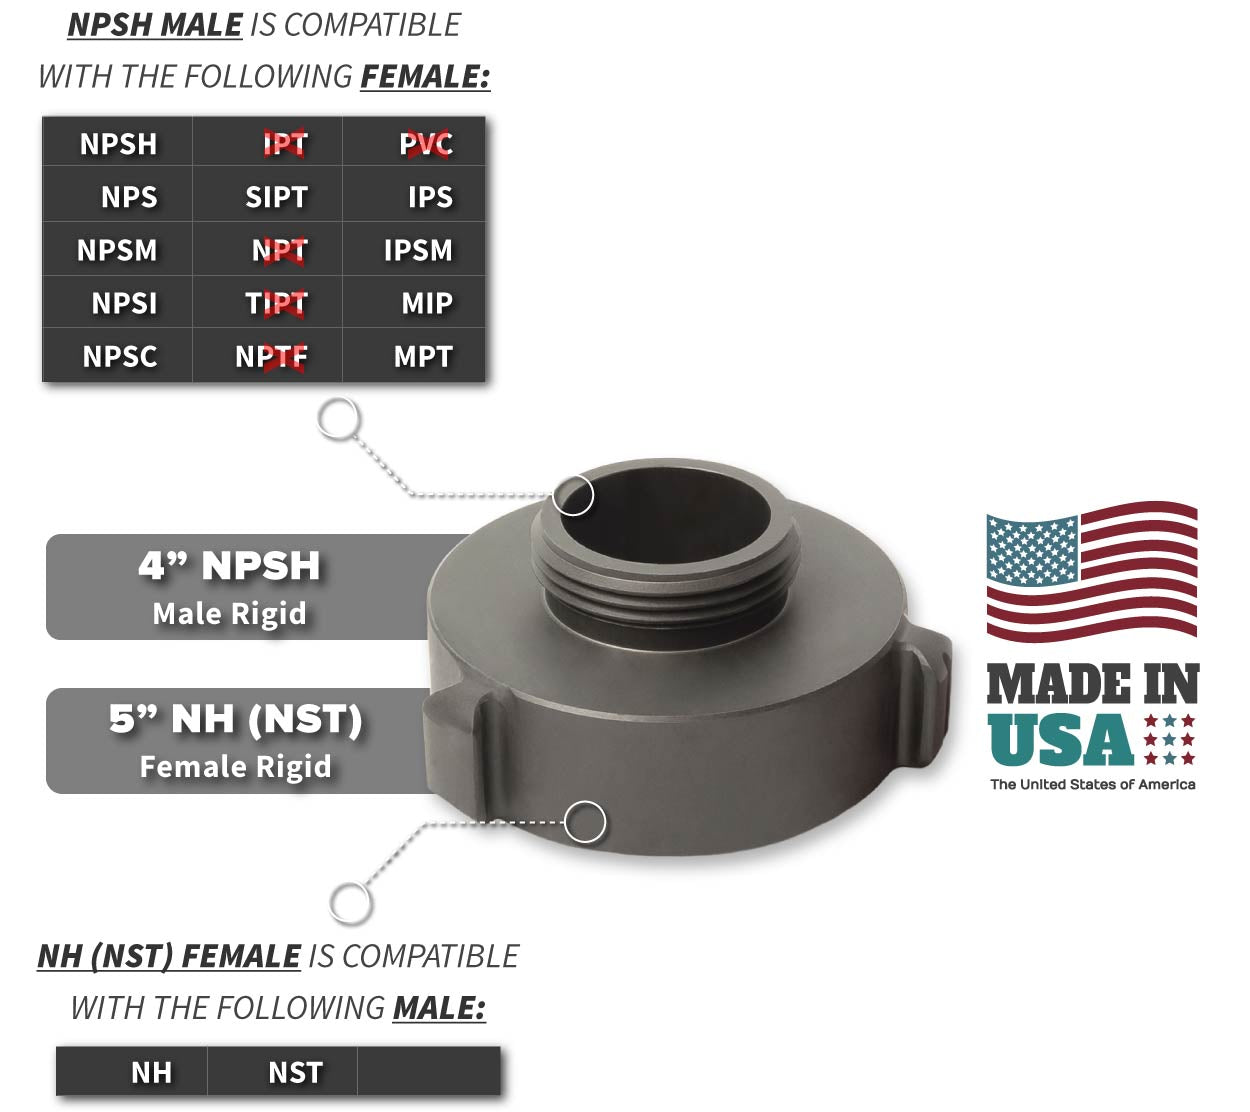 5 Inch NH-NST Female x 4 Inch NPSH Male Compatibility Thread Chart